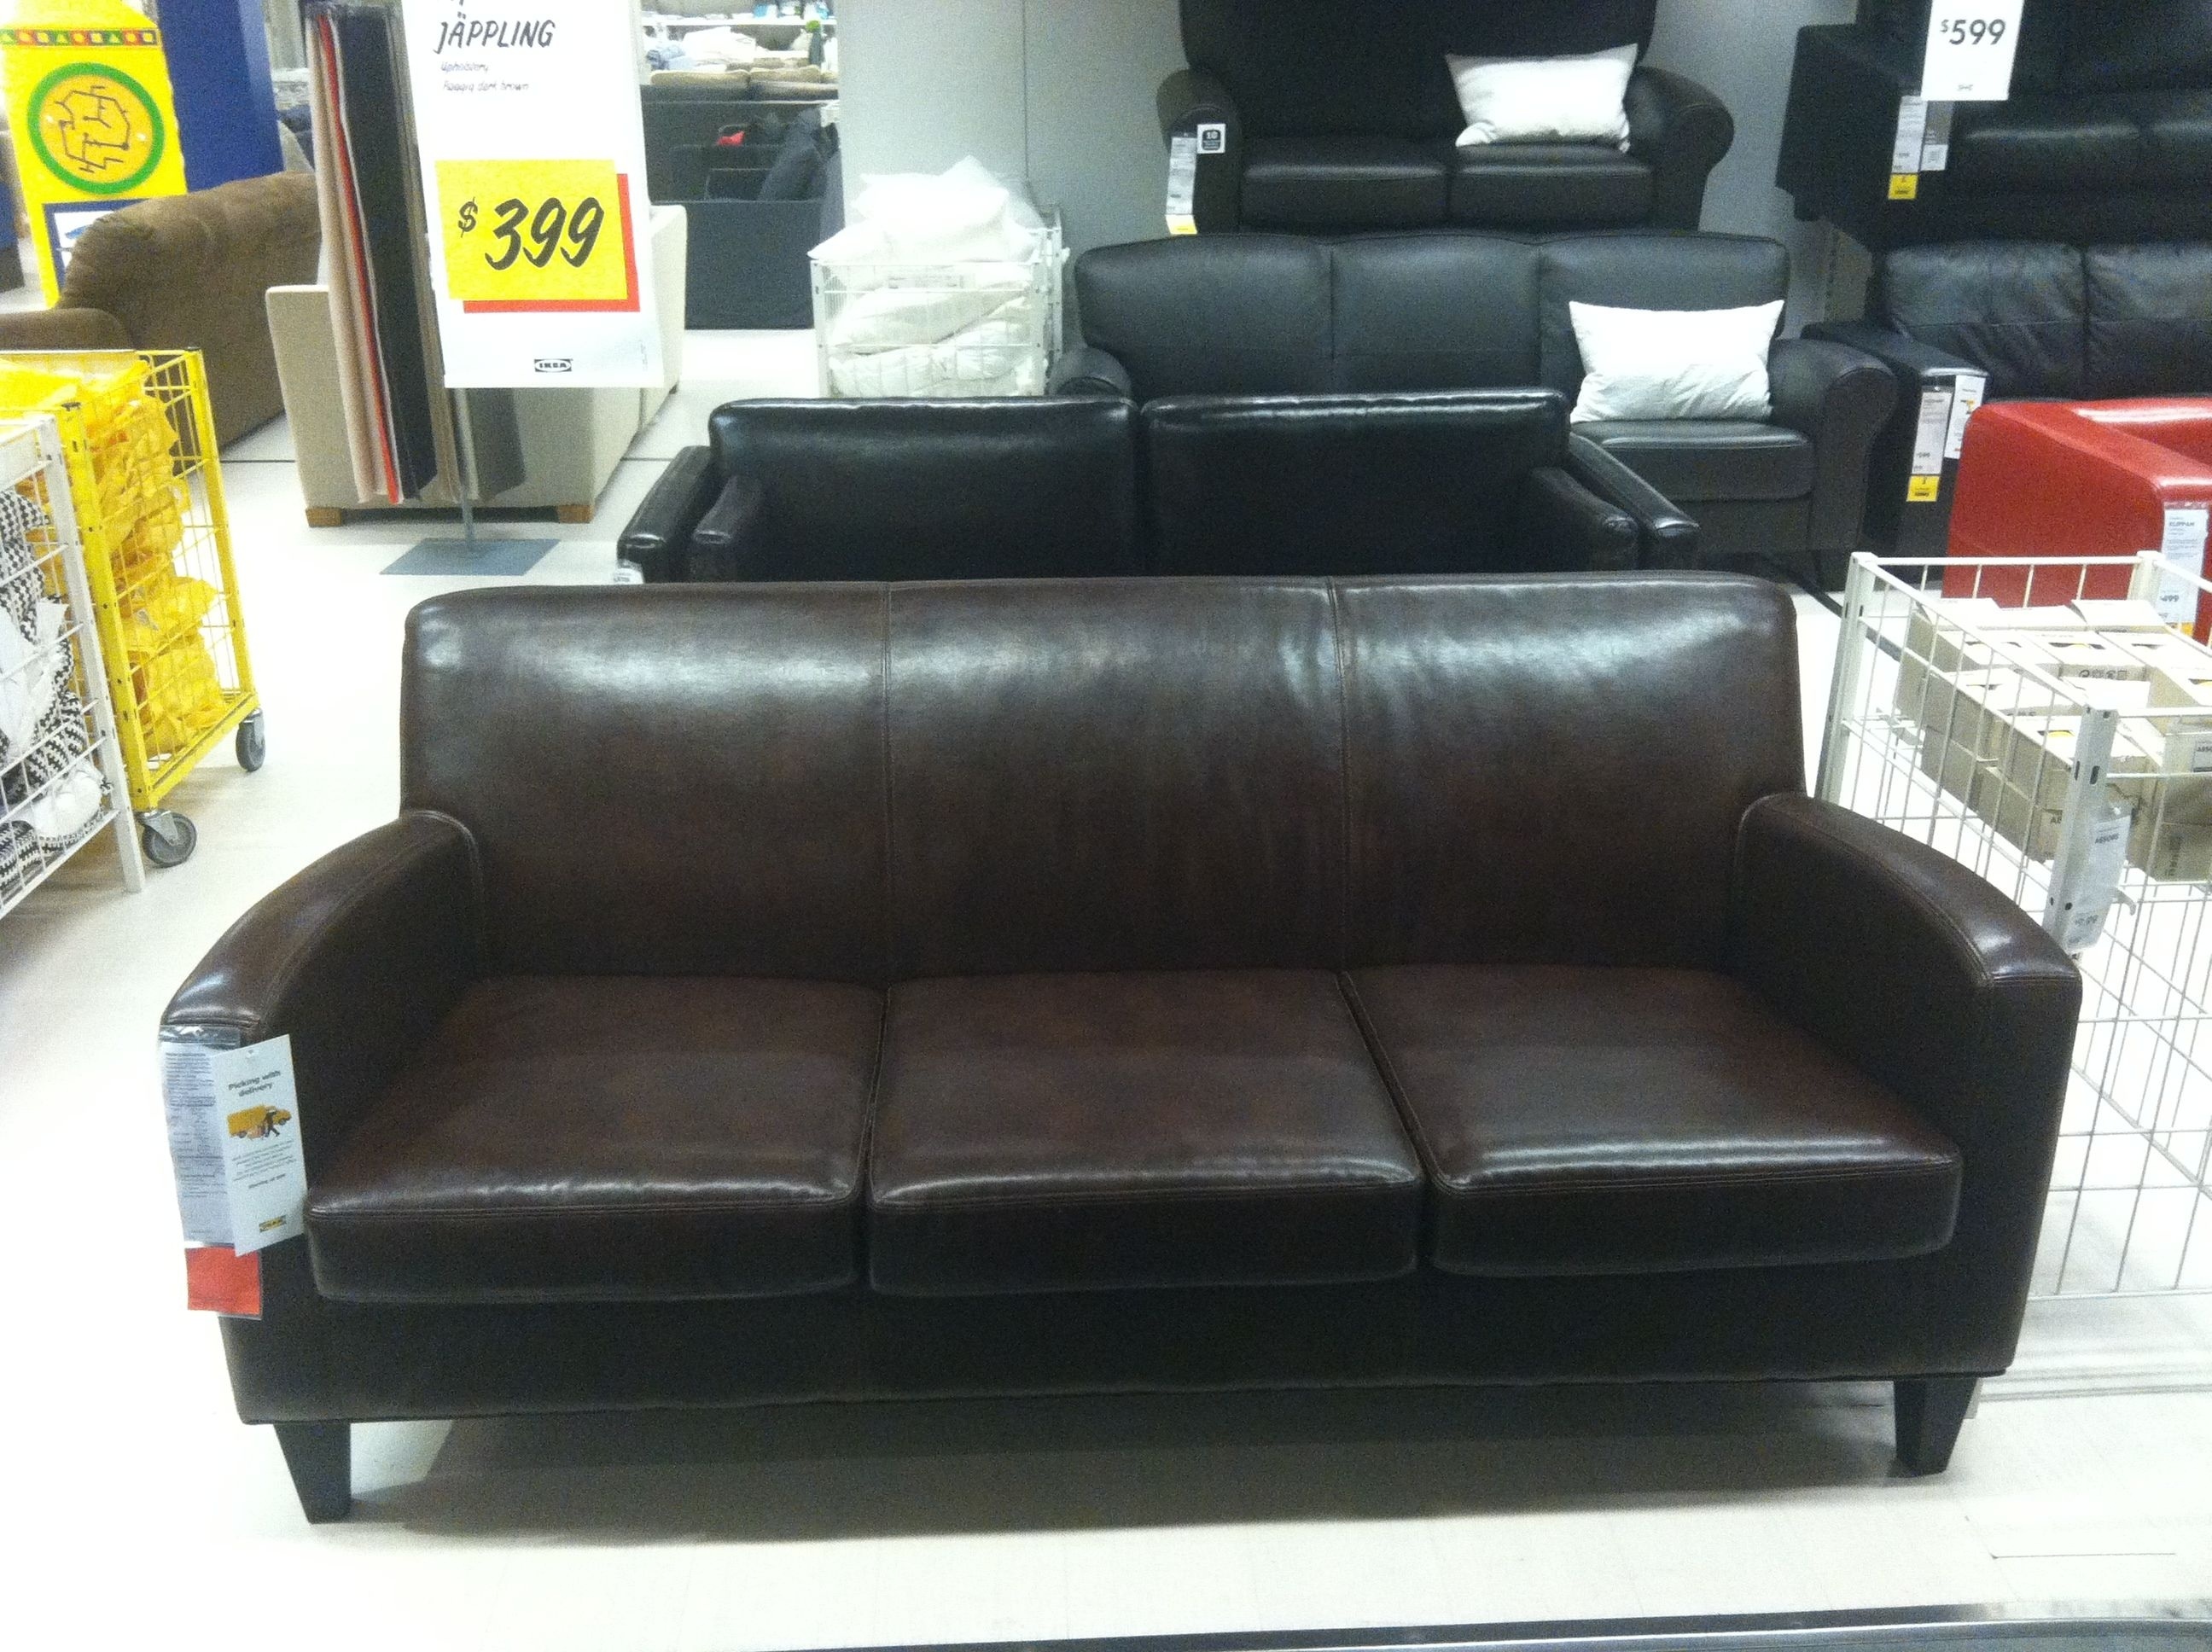 Jappling Sofa Ikea $399 | Basement | Pinterest | Ikea Sofa, Ikea And pertaining to Taron 3 Piece Power Reclining Sectionals With Left Facing Console Loveseat (Image 10 of 30)